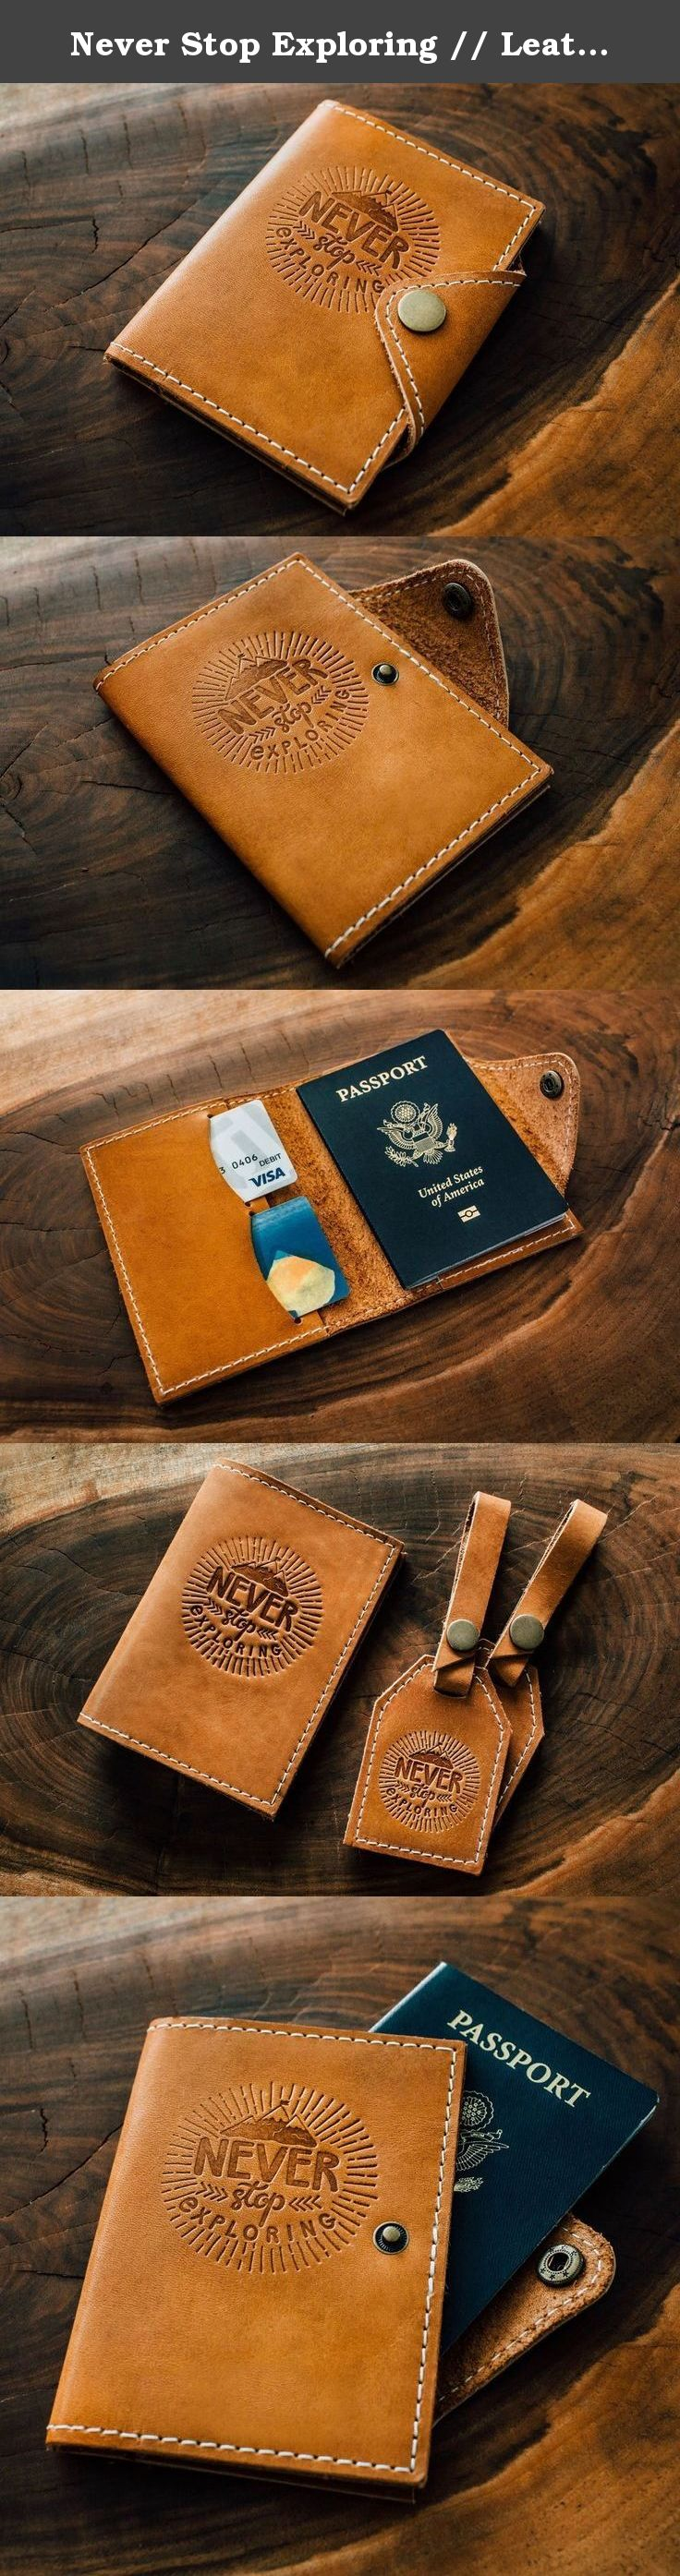 Never Stop Exploring // Leather Passport Cover and Travel Wallet. ► 100% Handmade in our Portland, Oregon Workshop with Full Grain, US tanned cowhide ► Holds up to 8 Credit Cards, Cash & holds your Passport and important travel papers. ► Designed to hold a US Passport. ► Our Passports are Fire-Branded... meaning we fire-heat etched metal stamps and brand them into the leather with up to 6000 pounds of force.